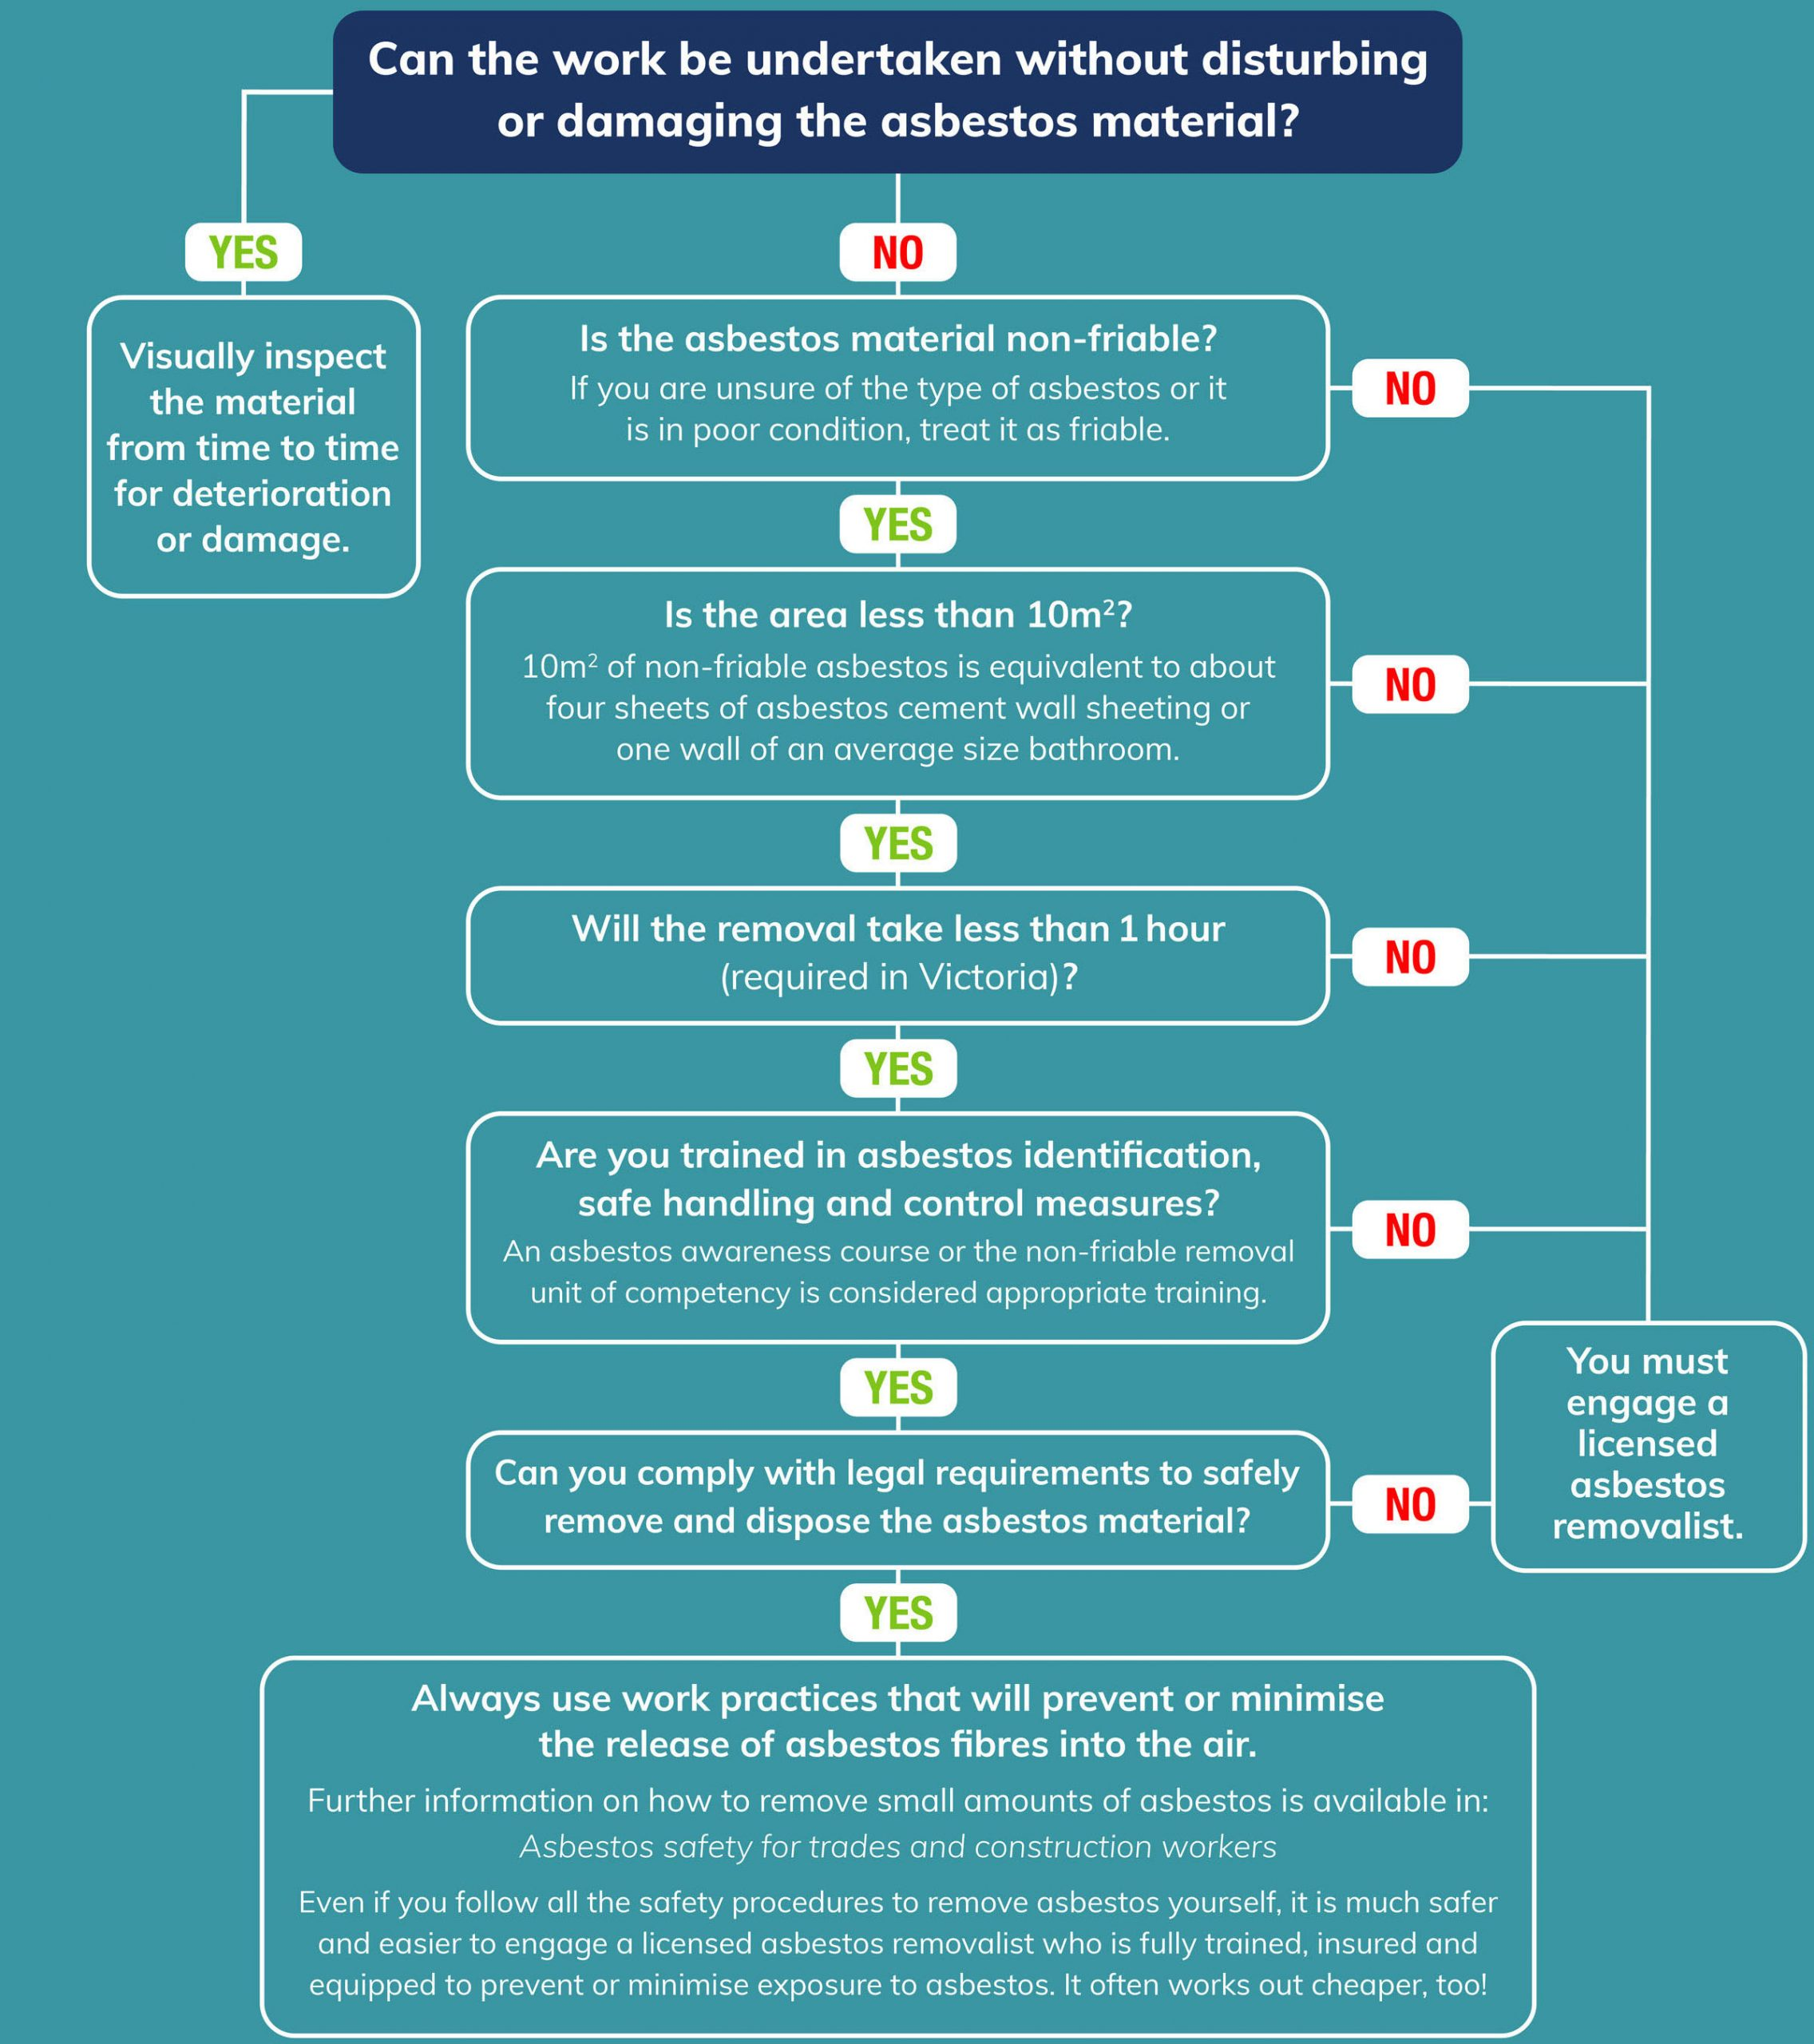 Flowchart - Can the work be undertaken without disturbing or damaging the asbestos material?